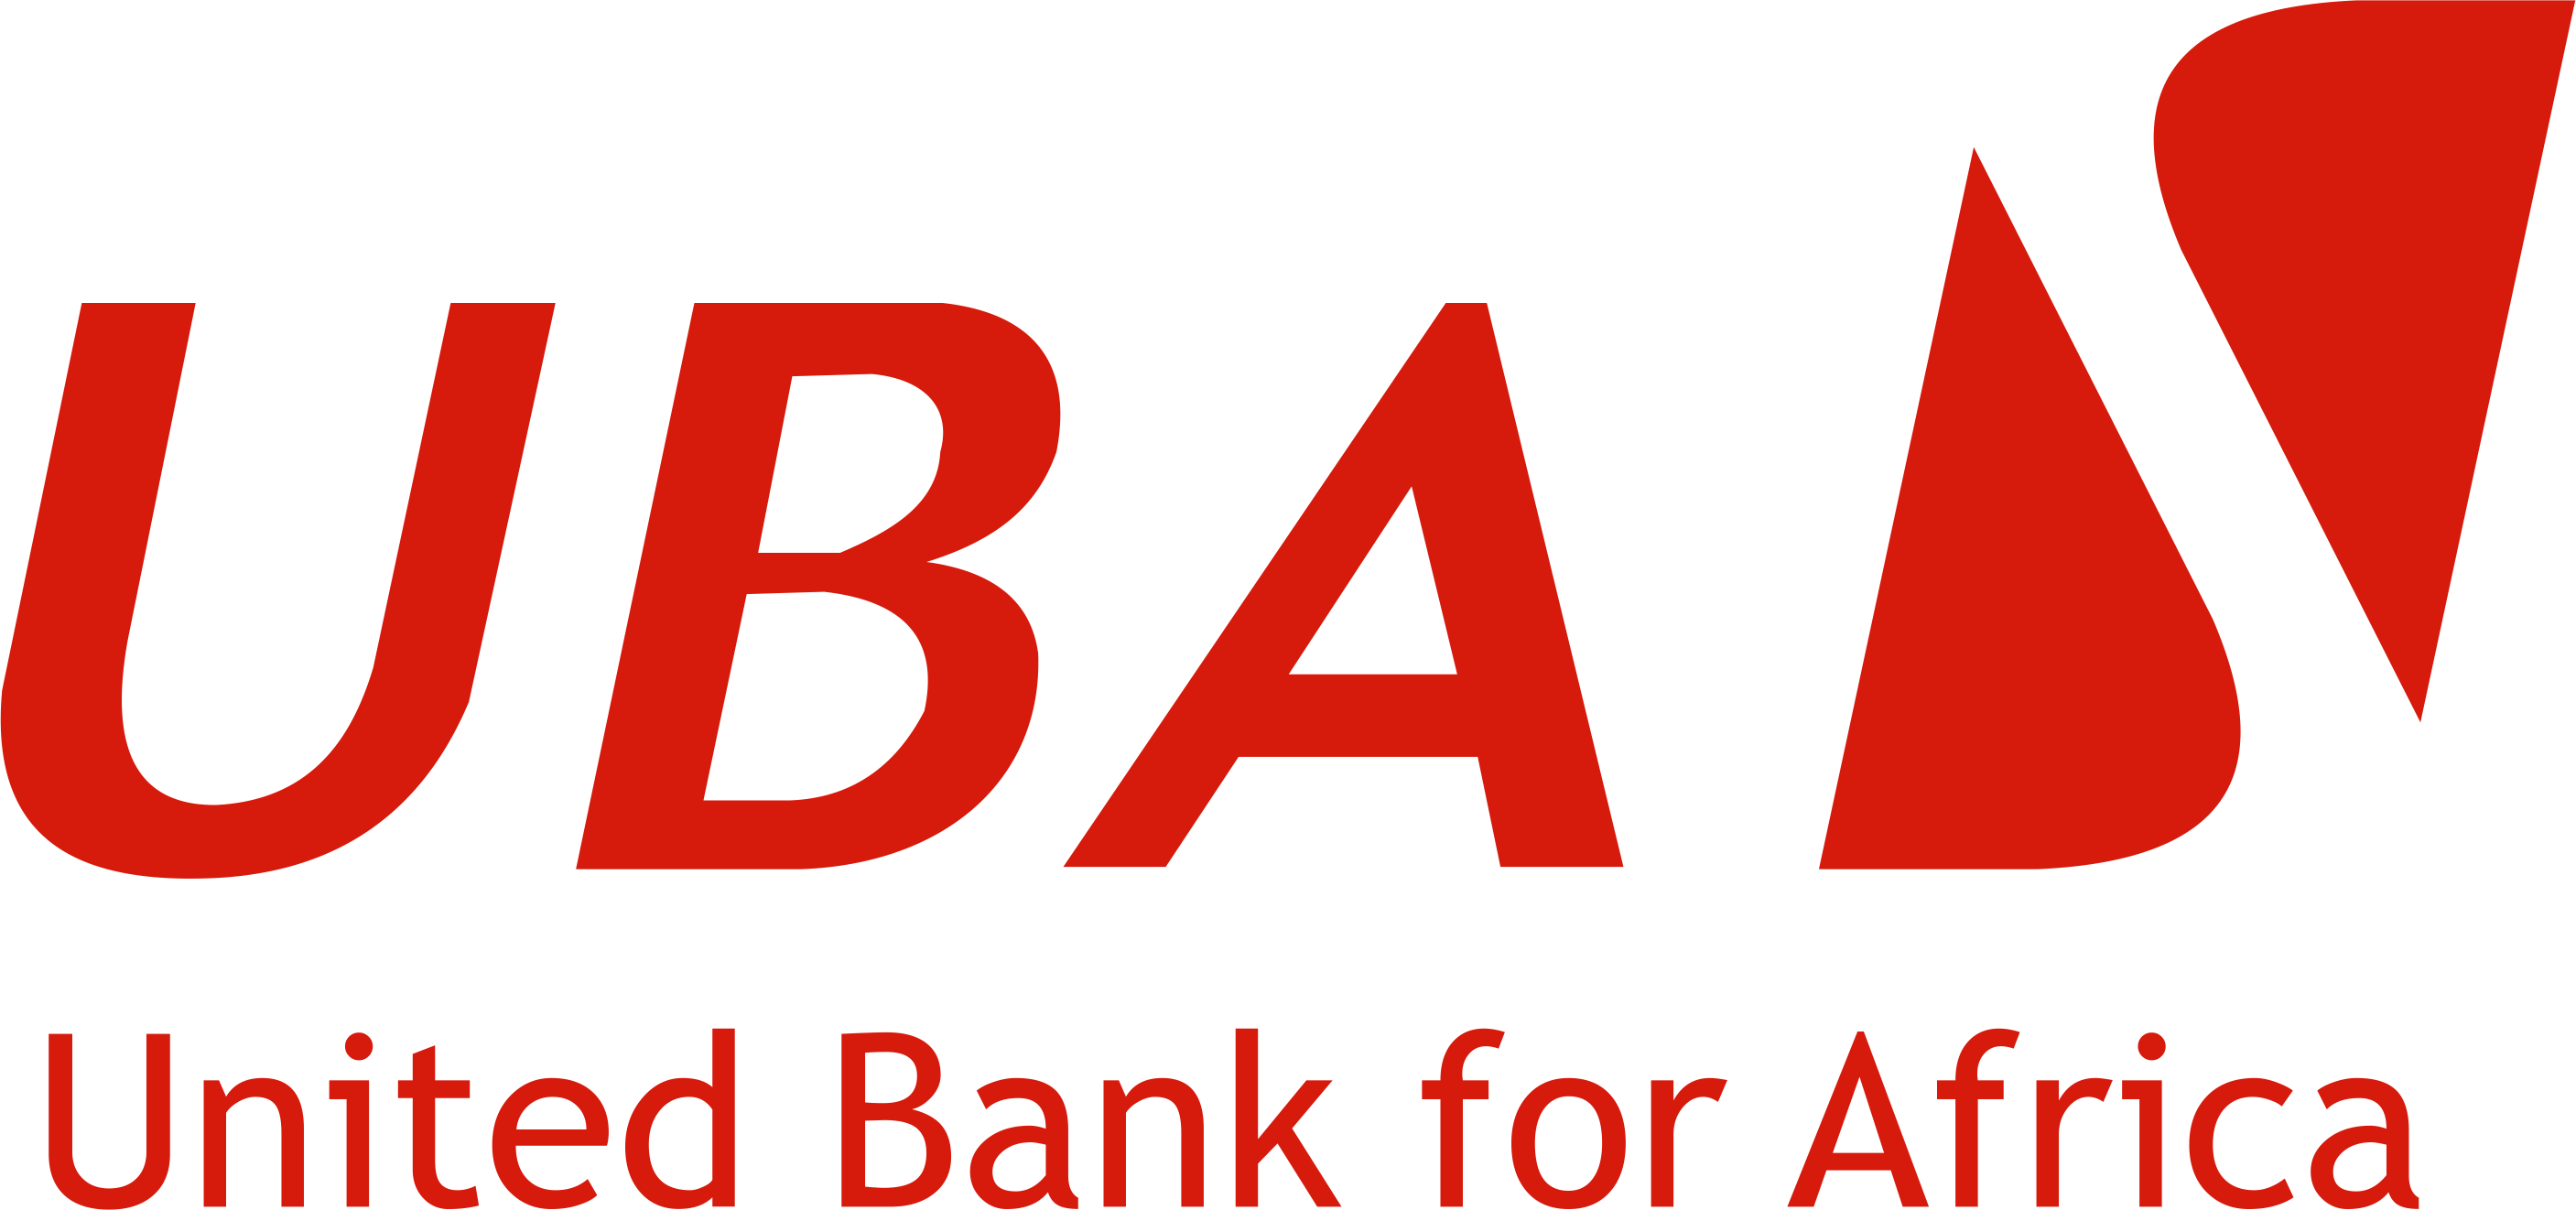 UBA Savings Account Registration: How to Open UBA Savings Account